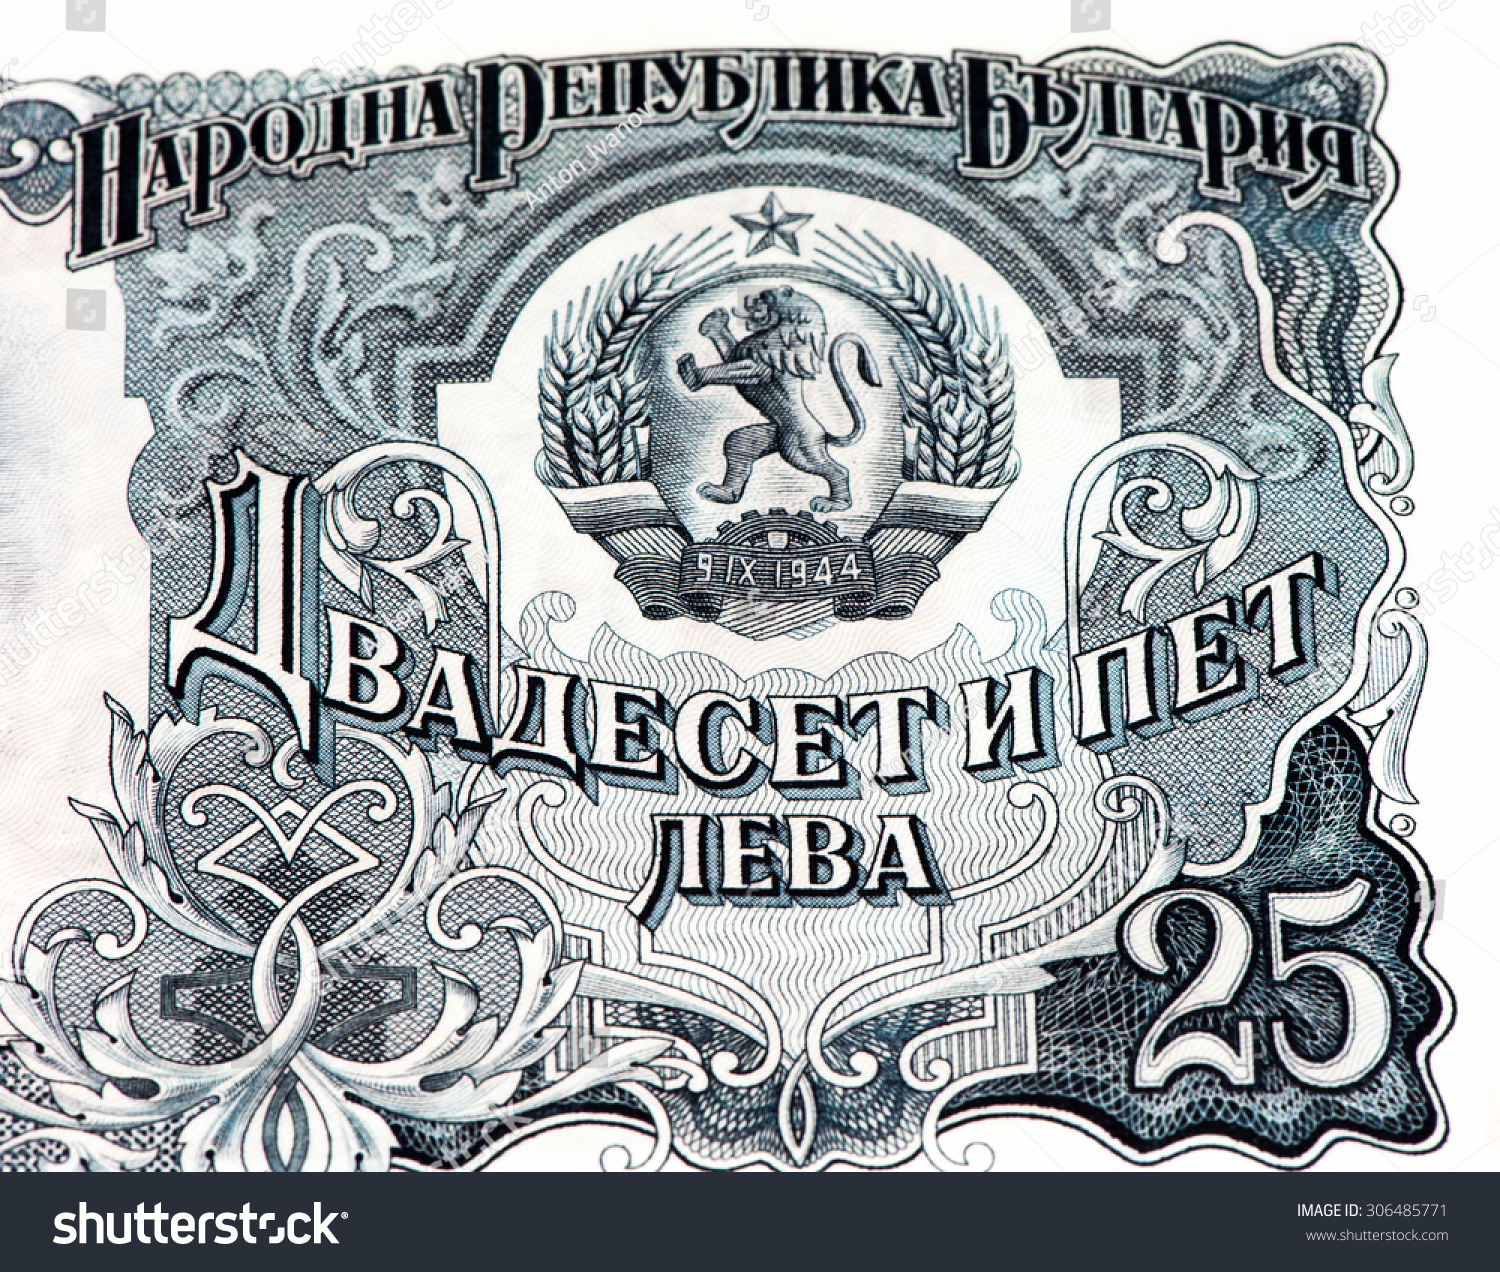 25 bulgarian lev bank note lev stock photo 306485771 shutterstock 25 bulgarian lev bank note lev is the national currency of bulgary biocorpaavc